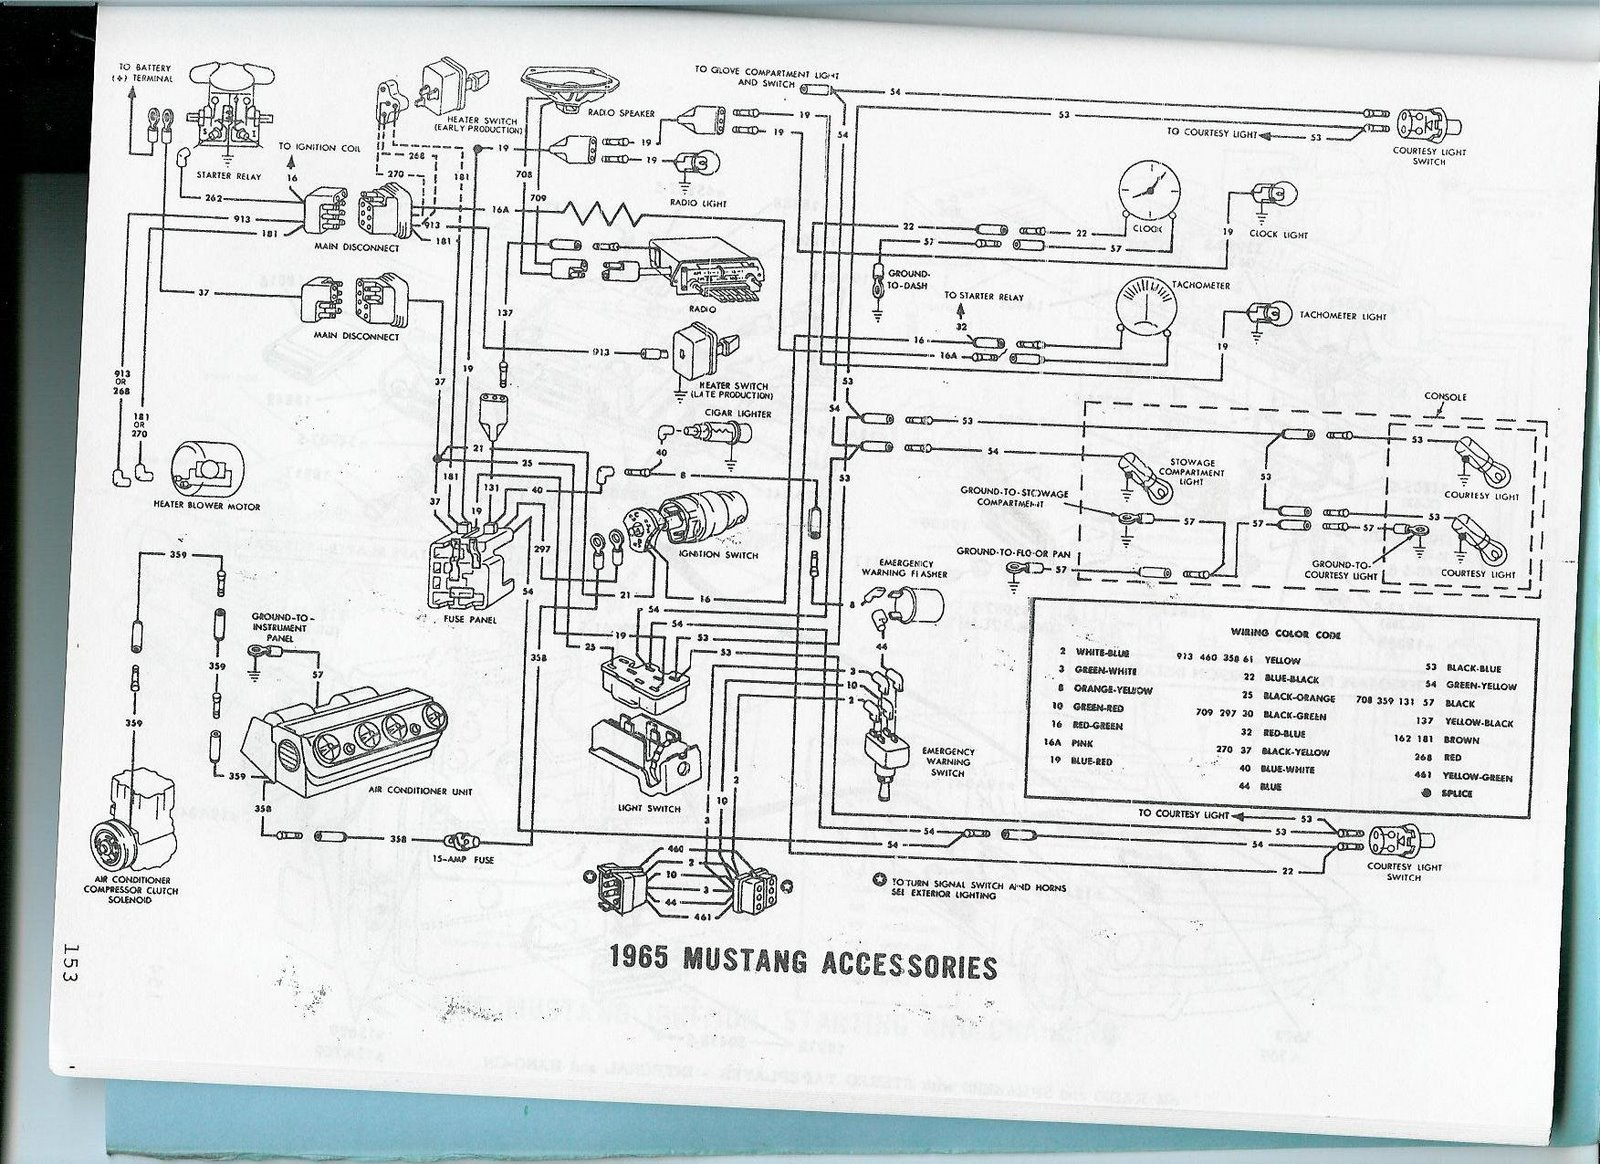 1966 mustang rally pac wiring diagram rally pack wiring problem 65 mustang rally pack wiring diagram